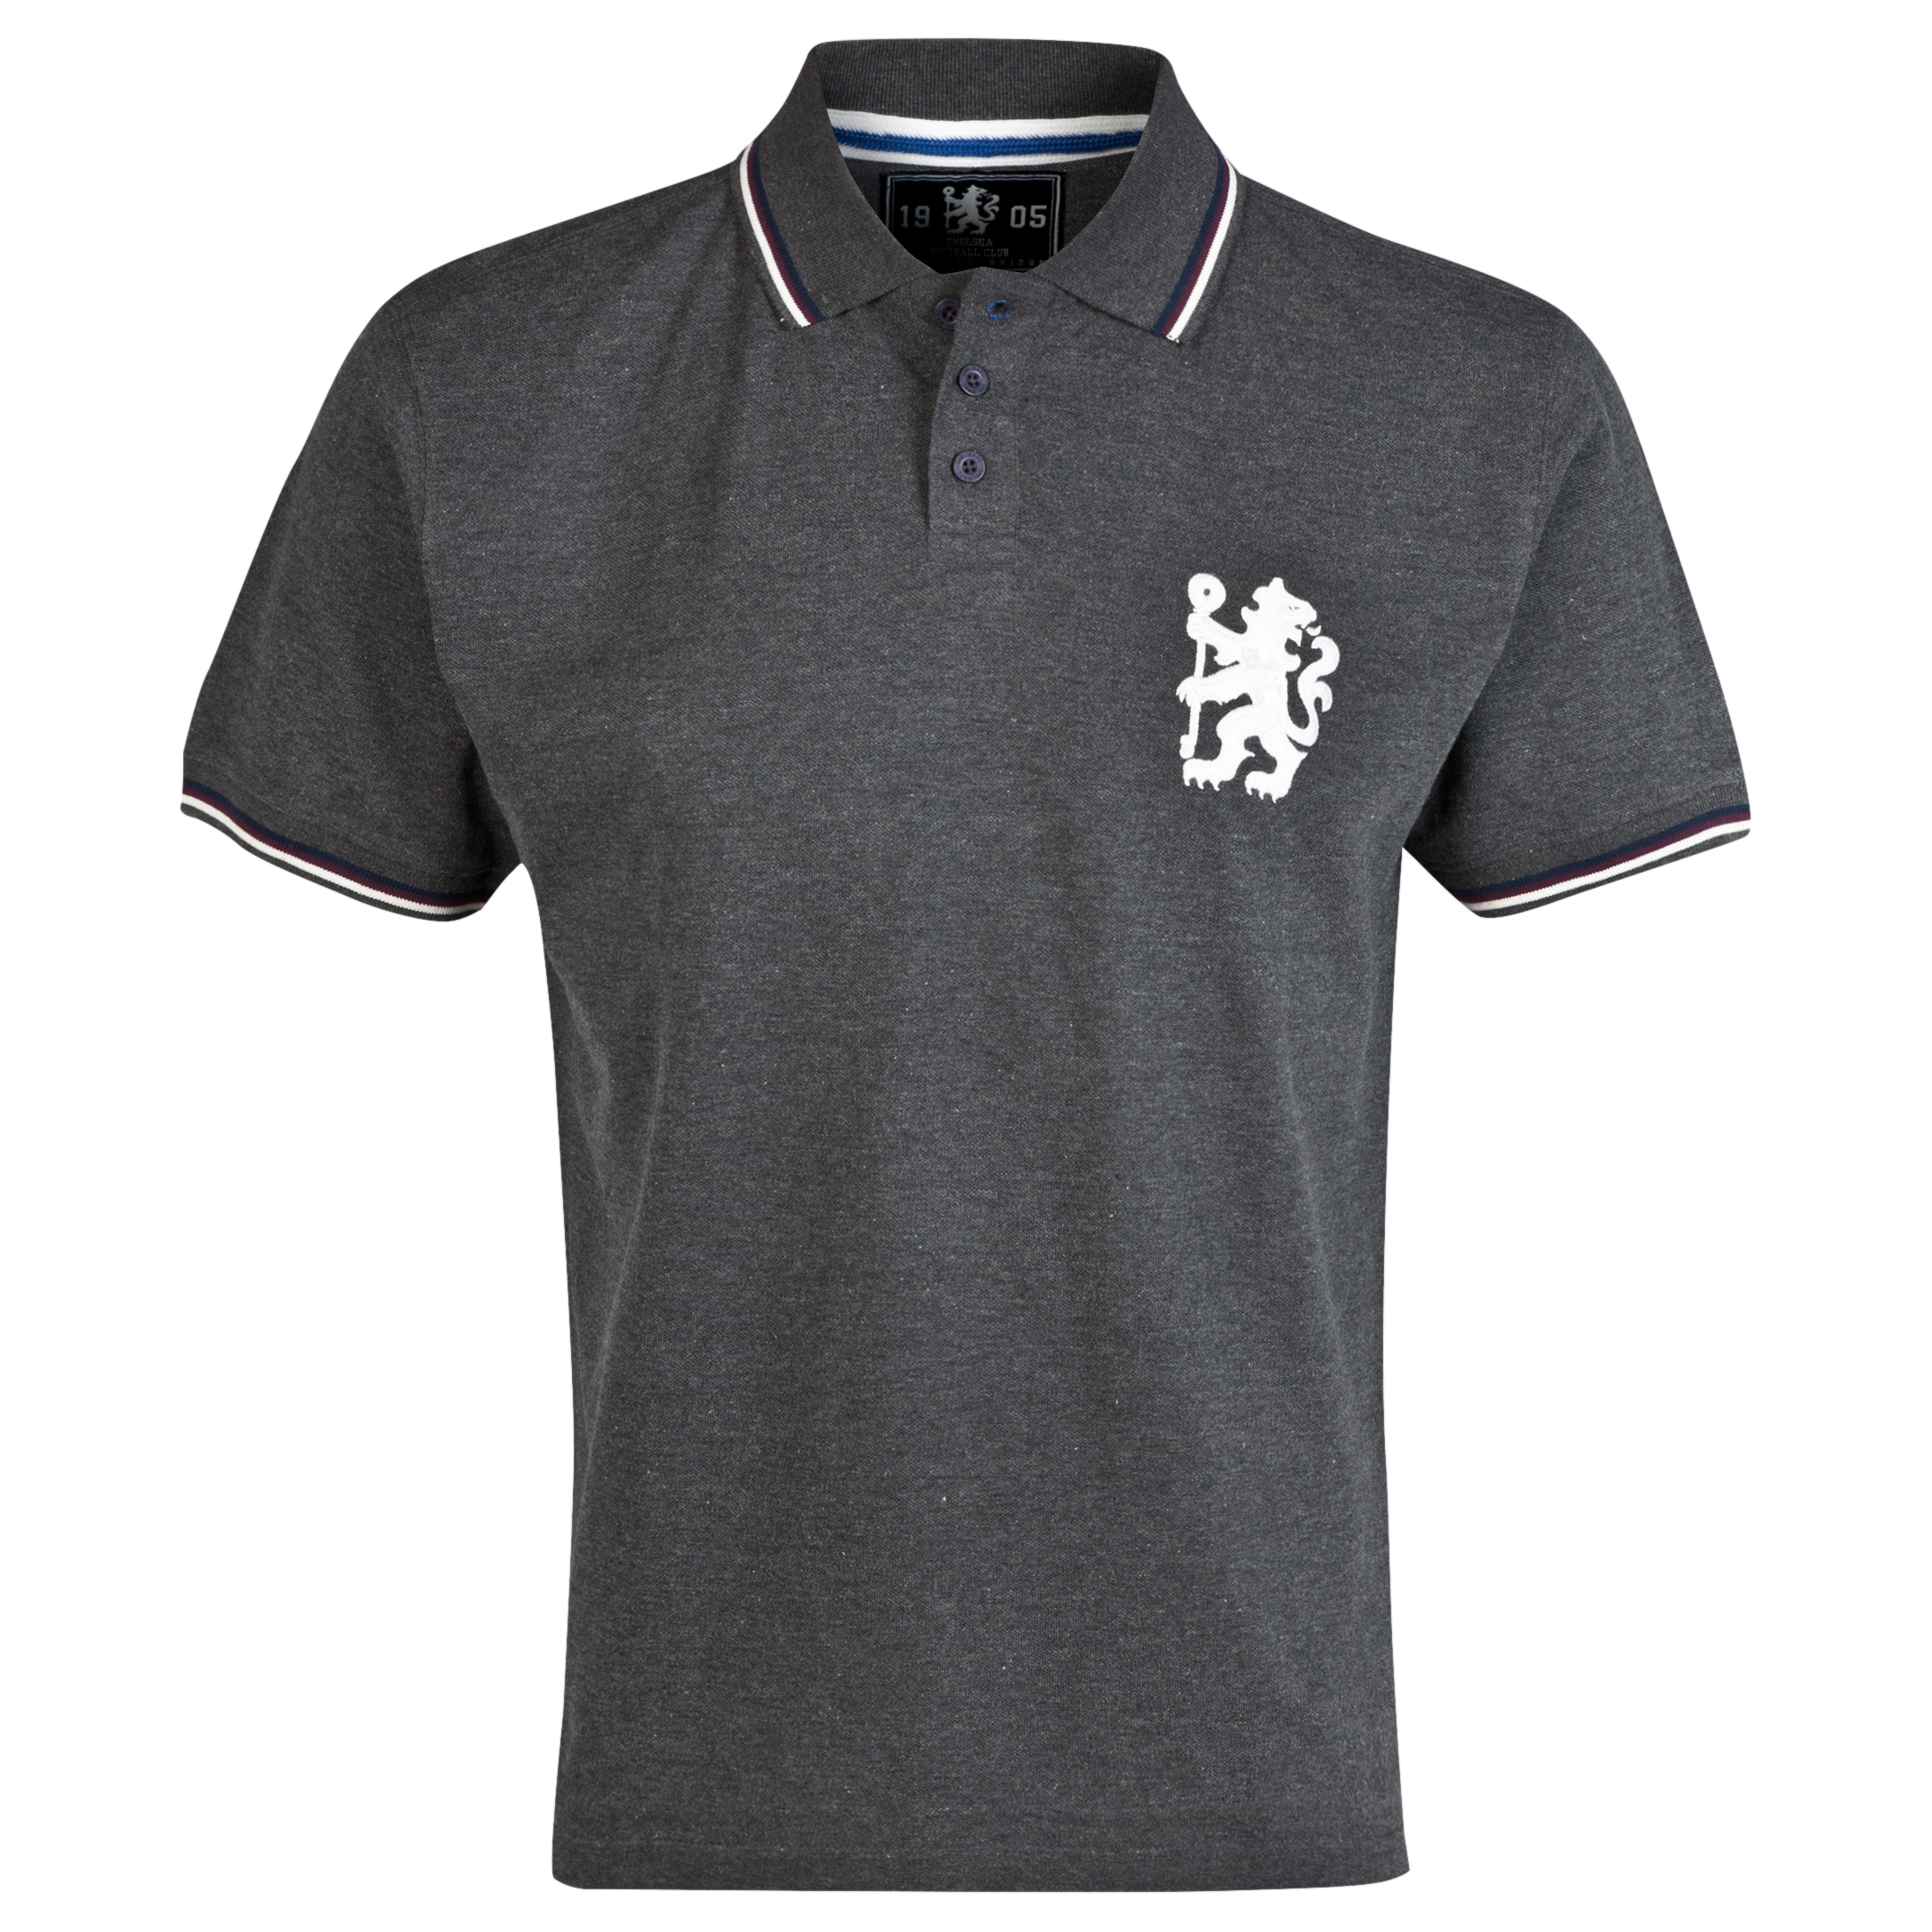 Chelsea Heritage Tipped Polo Shirt - Vintage Marl - Mens